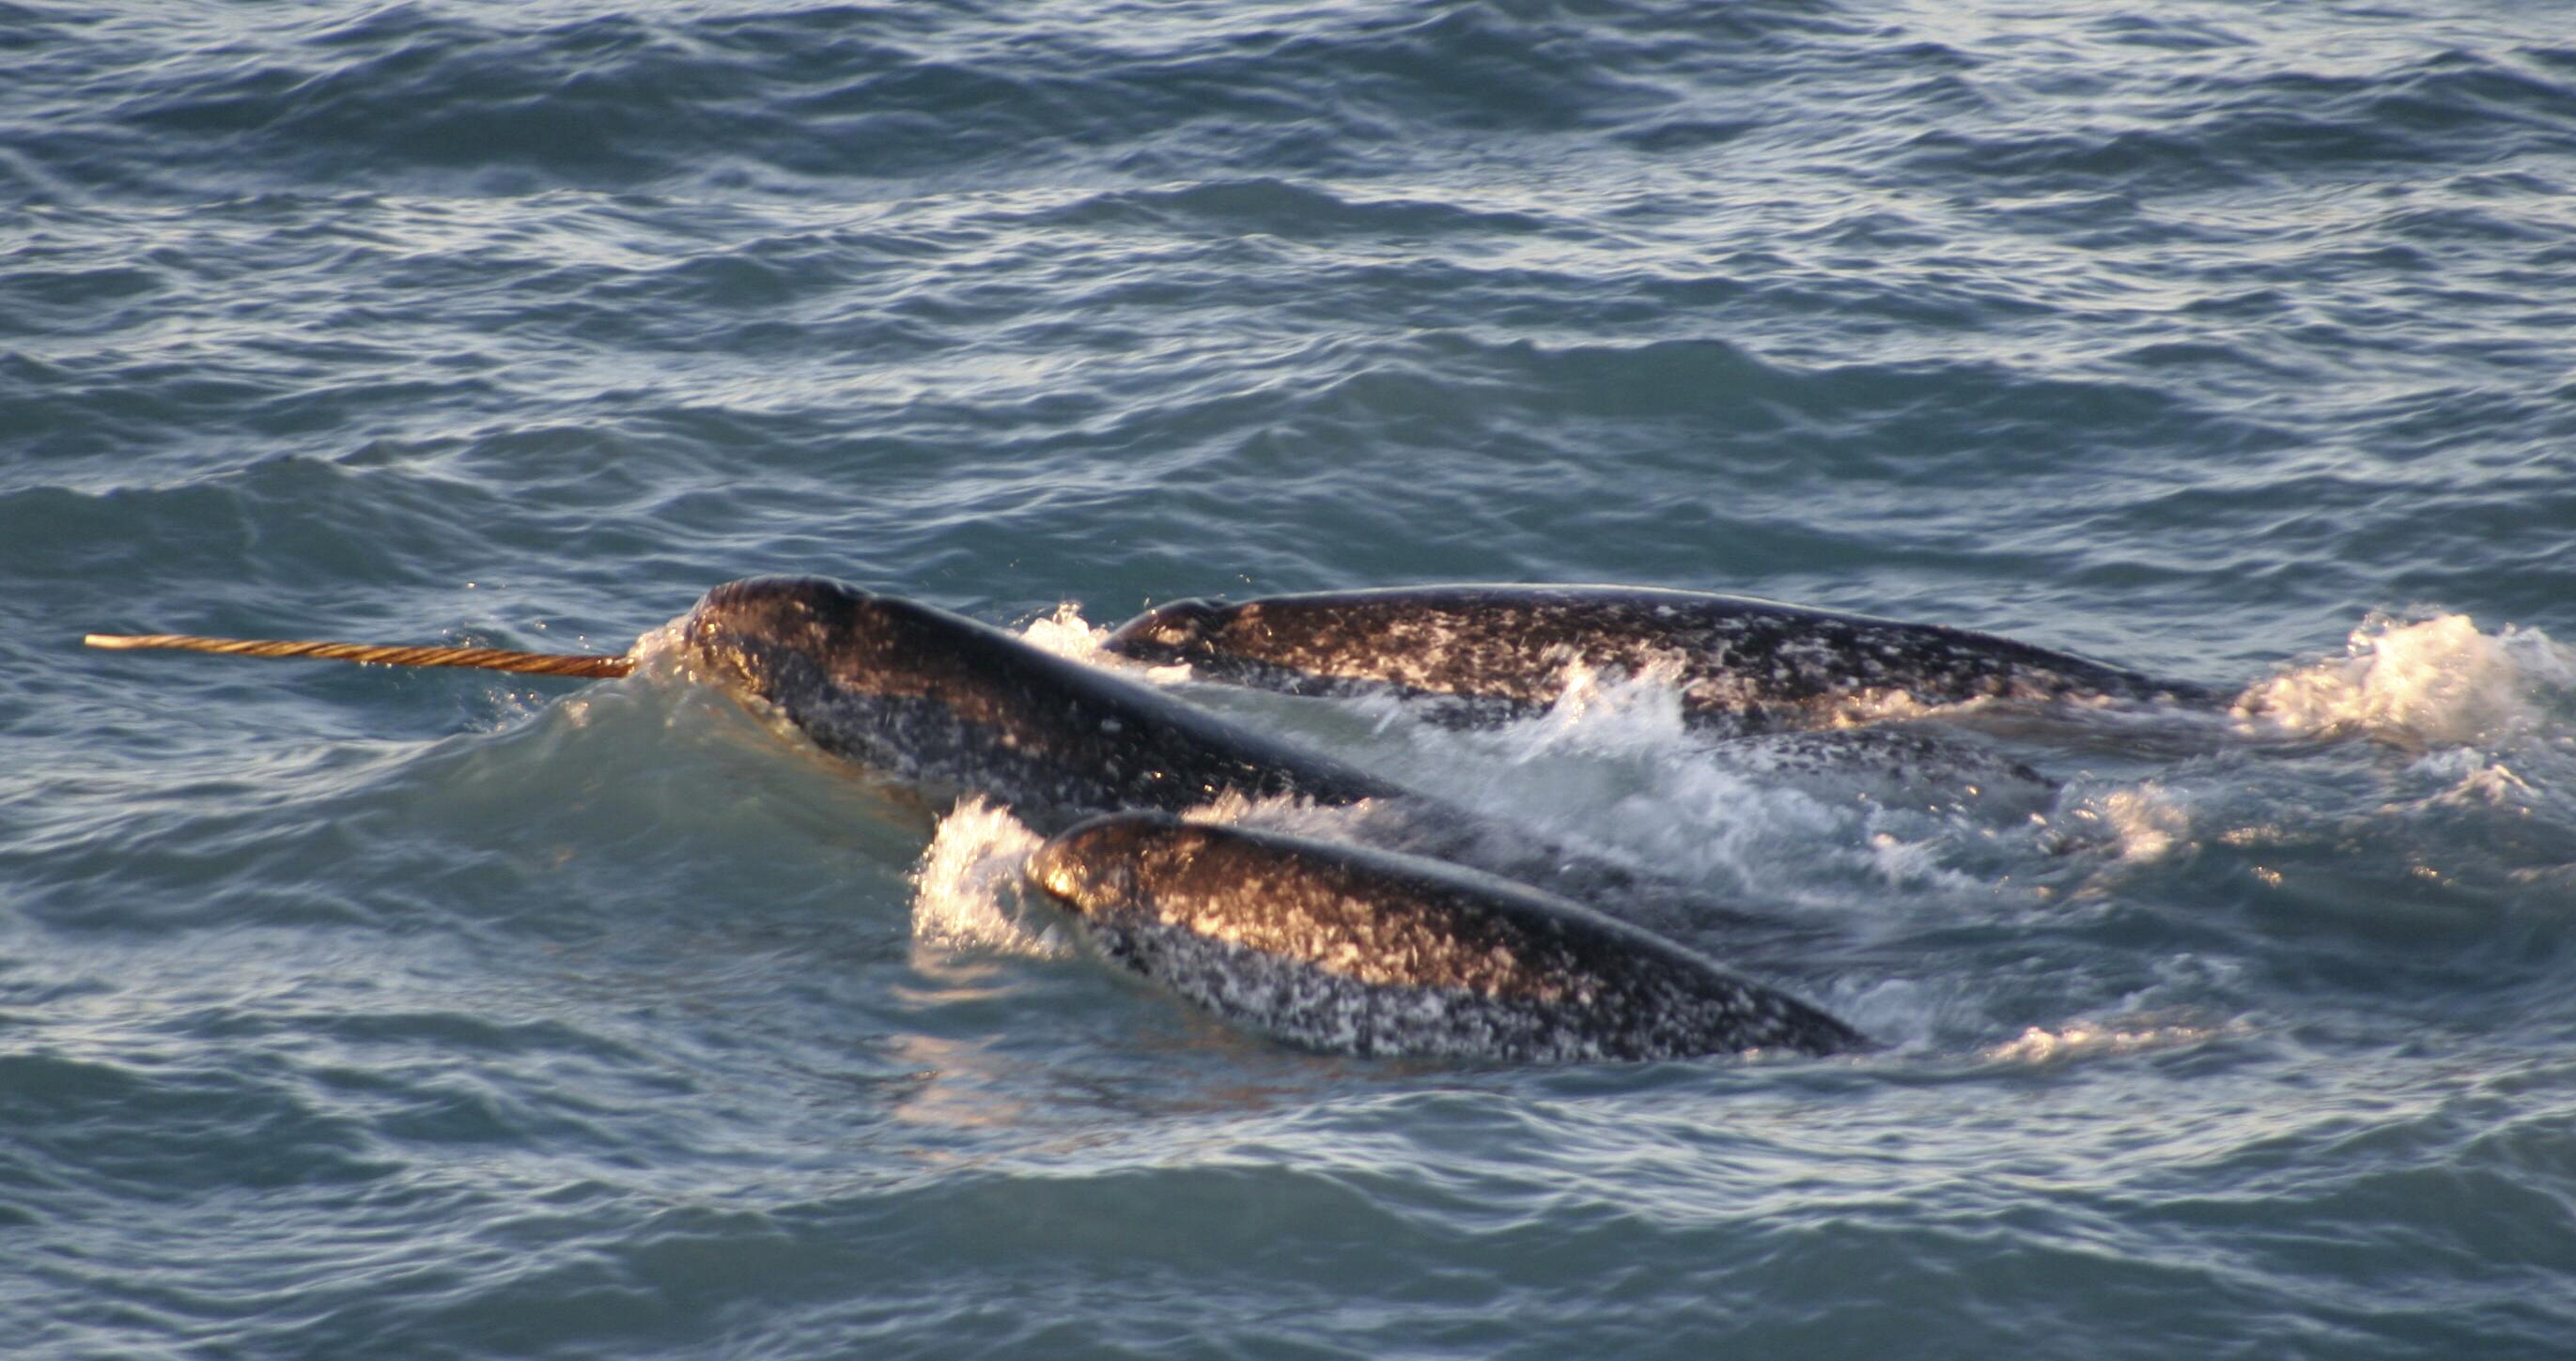 In a photo provided by the National Oceanic and Atmospheric Administration, a pod of narwhals surfaces in the waters off northern Canada in August, 2005. Researchers tracked narwhals and found that they have exceptional echolocation abilities,  reconstructing their underwater world with more resolution that most other animals on the planet. (Kristin Laidre / NOAA via The New York Times)